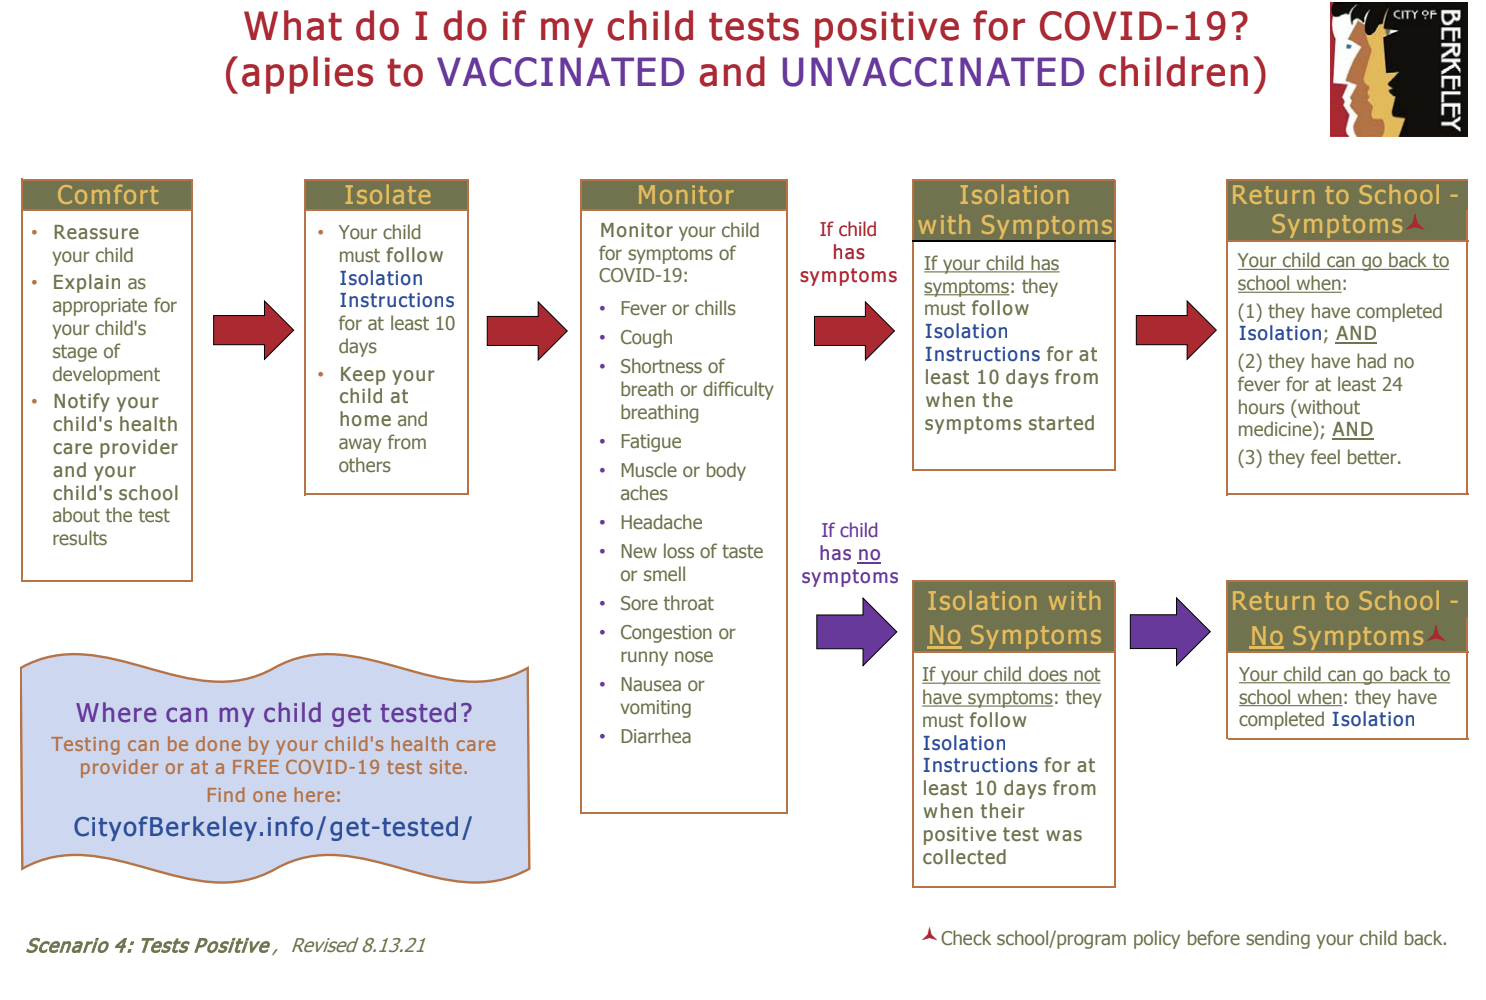 What do I do if my child tests positive for COVID-19?